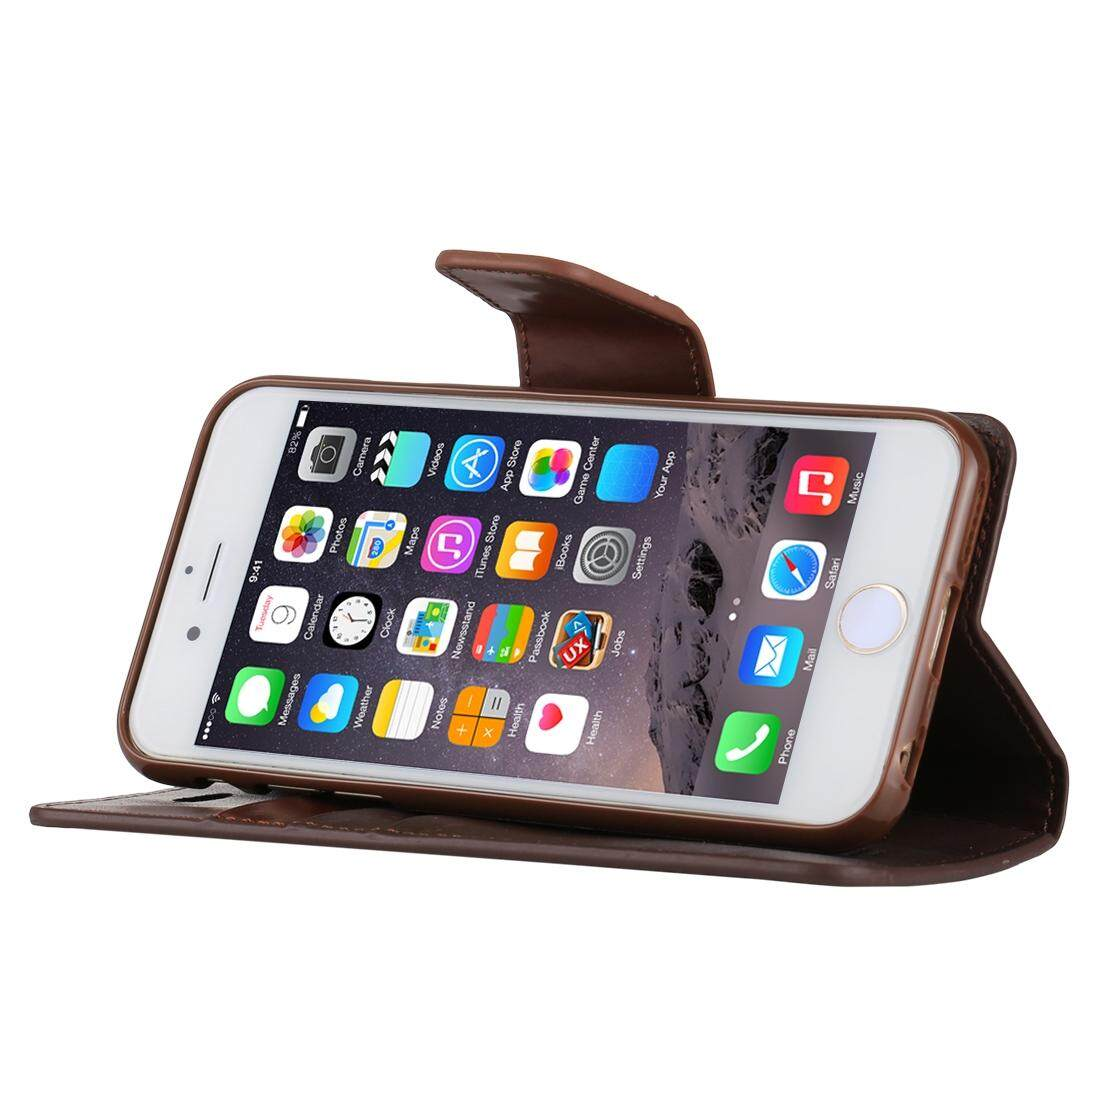 Features Mercury Goospery Sonata Diary Series For Iphone 6 6s Fancy Case Brown Black Simulation Skin Horizontal Flip Leather